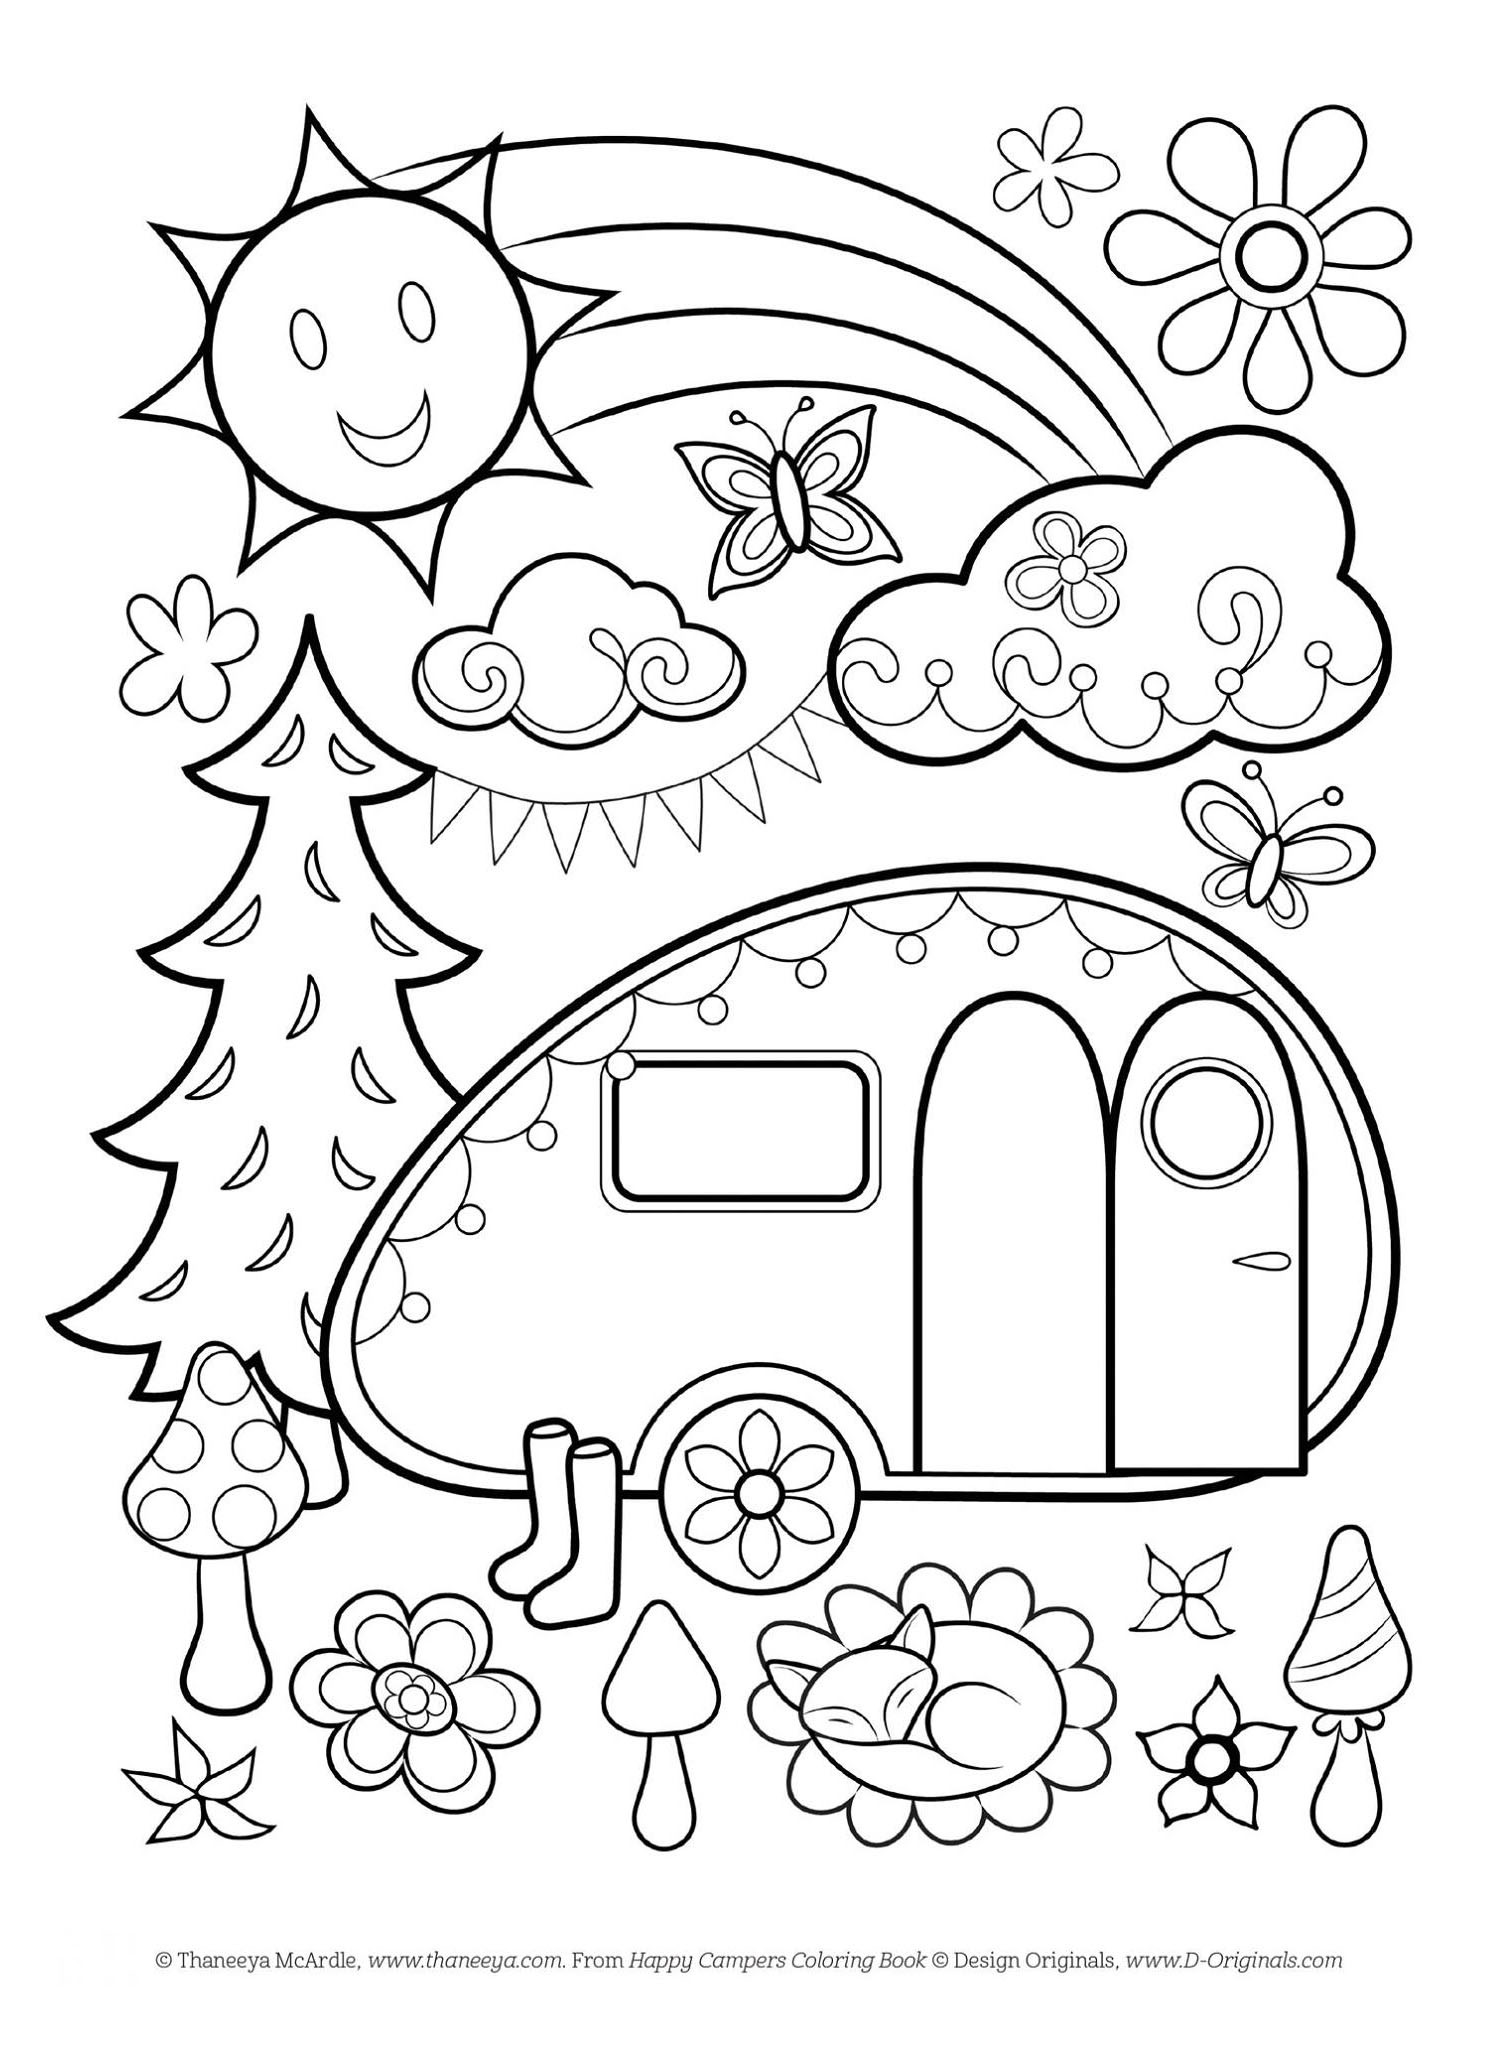 wwwfree coloring pagescom free adult floral coloring page the graphics fairy pagescom coloring wwwfree